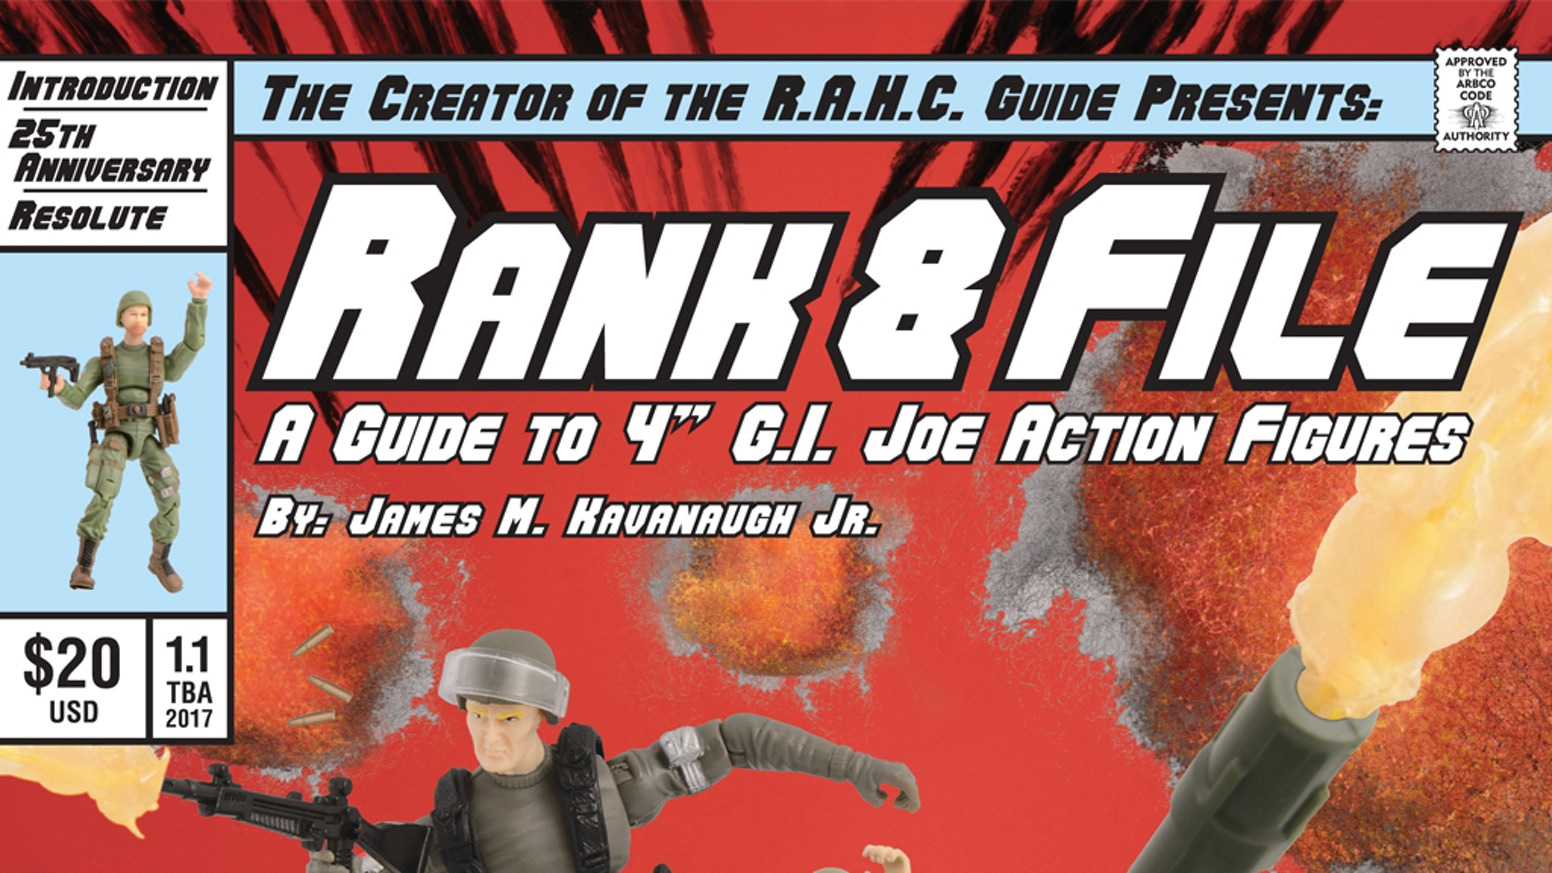 Welcome to the Rank & File volume 1 reprint Kickstarter campaign, a fundraiser designed to reprint the volume that started it all!